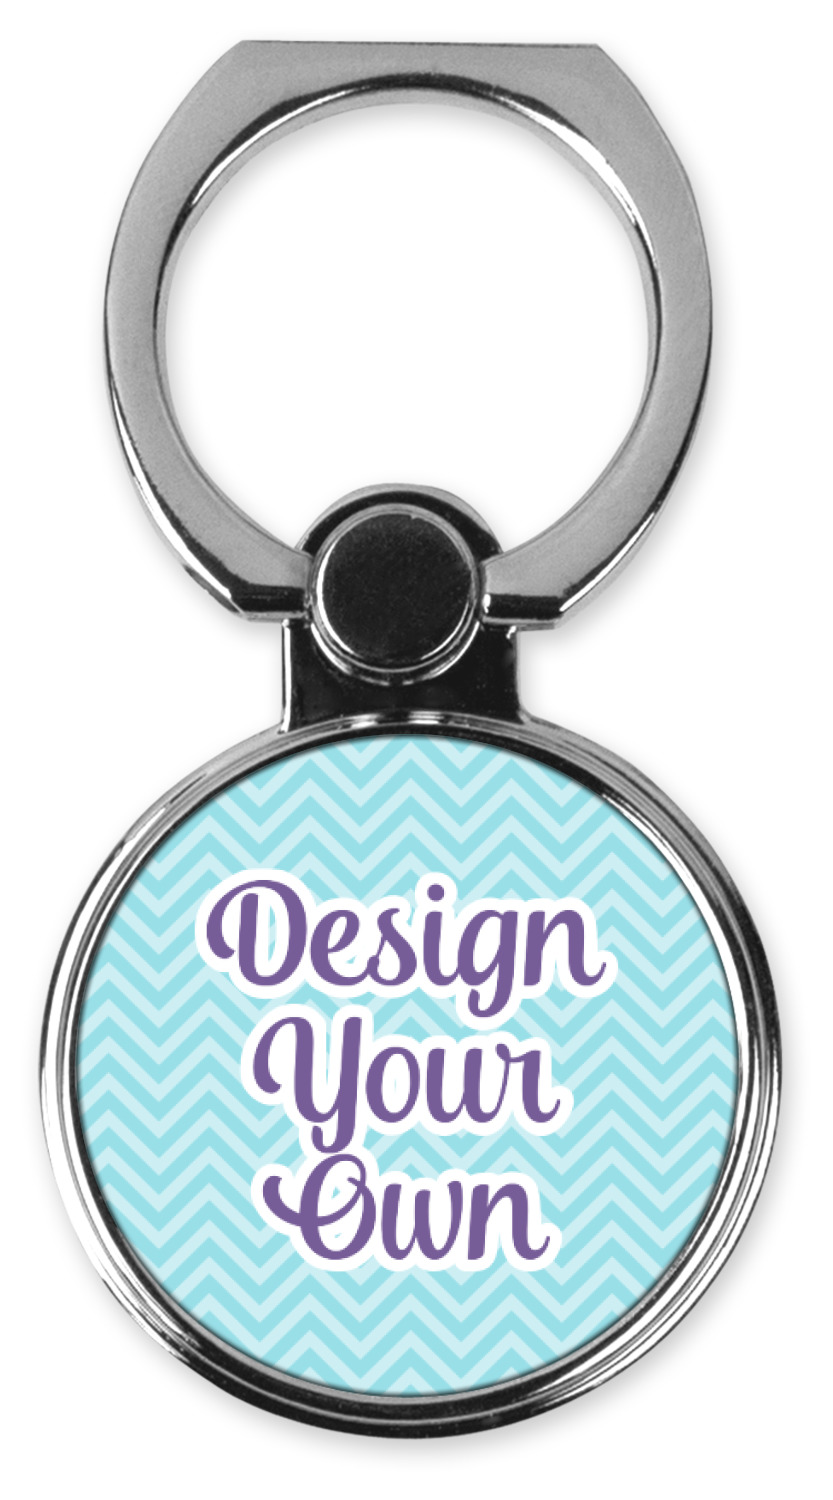 Personalized Photo Ring Cell Phone Holder